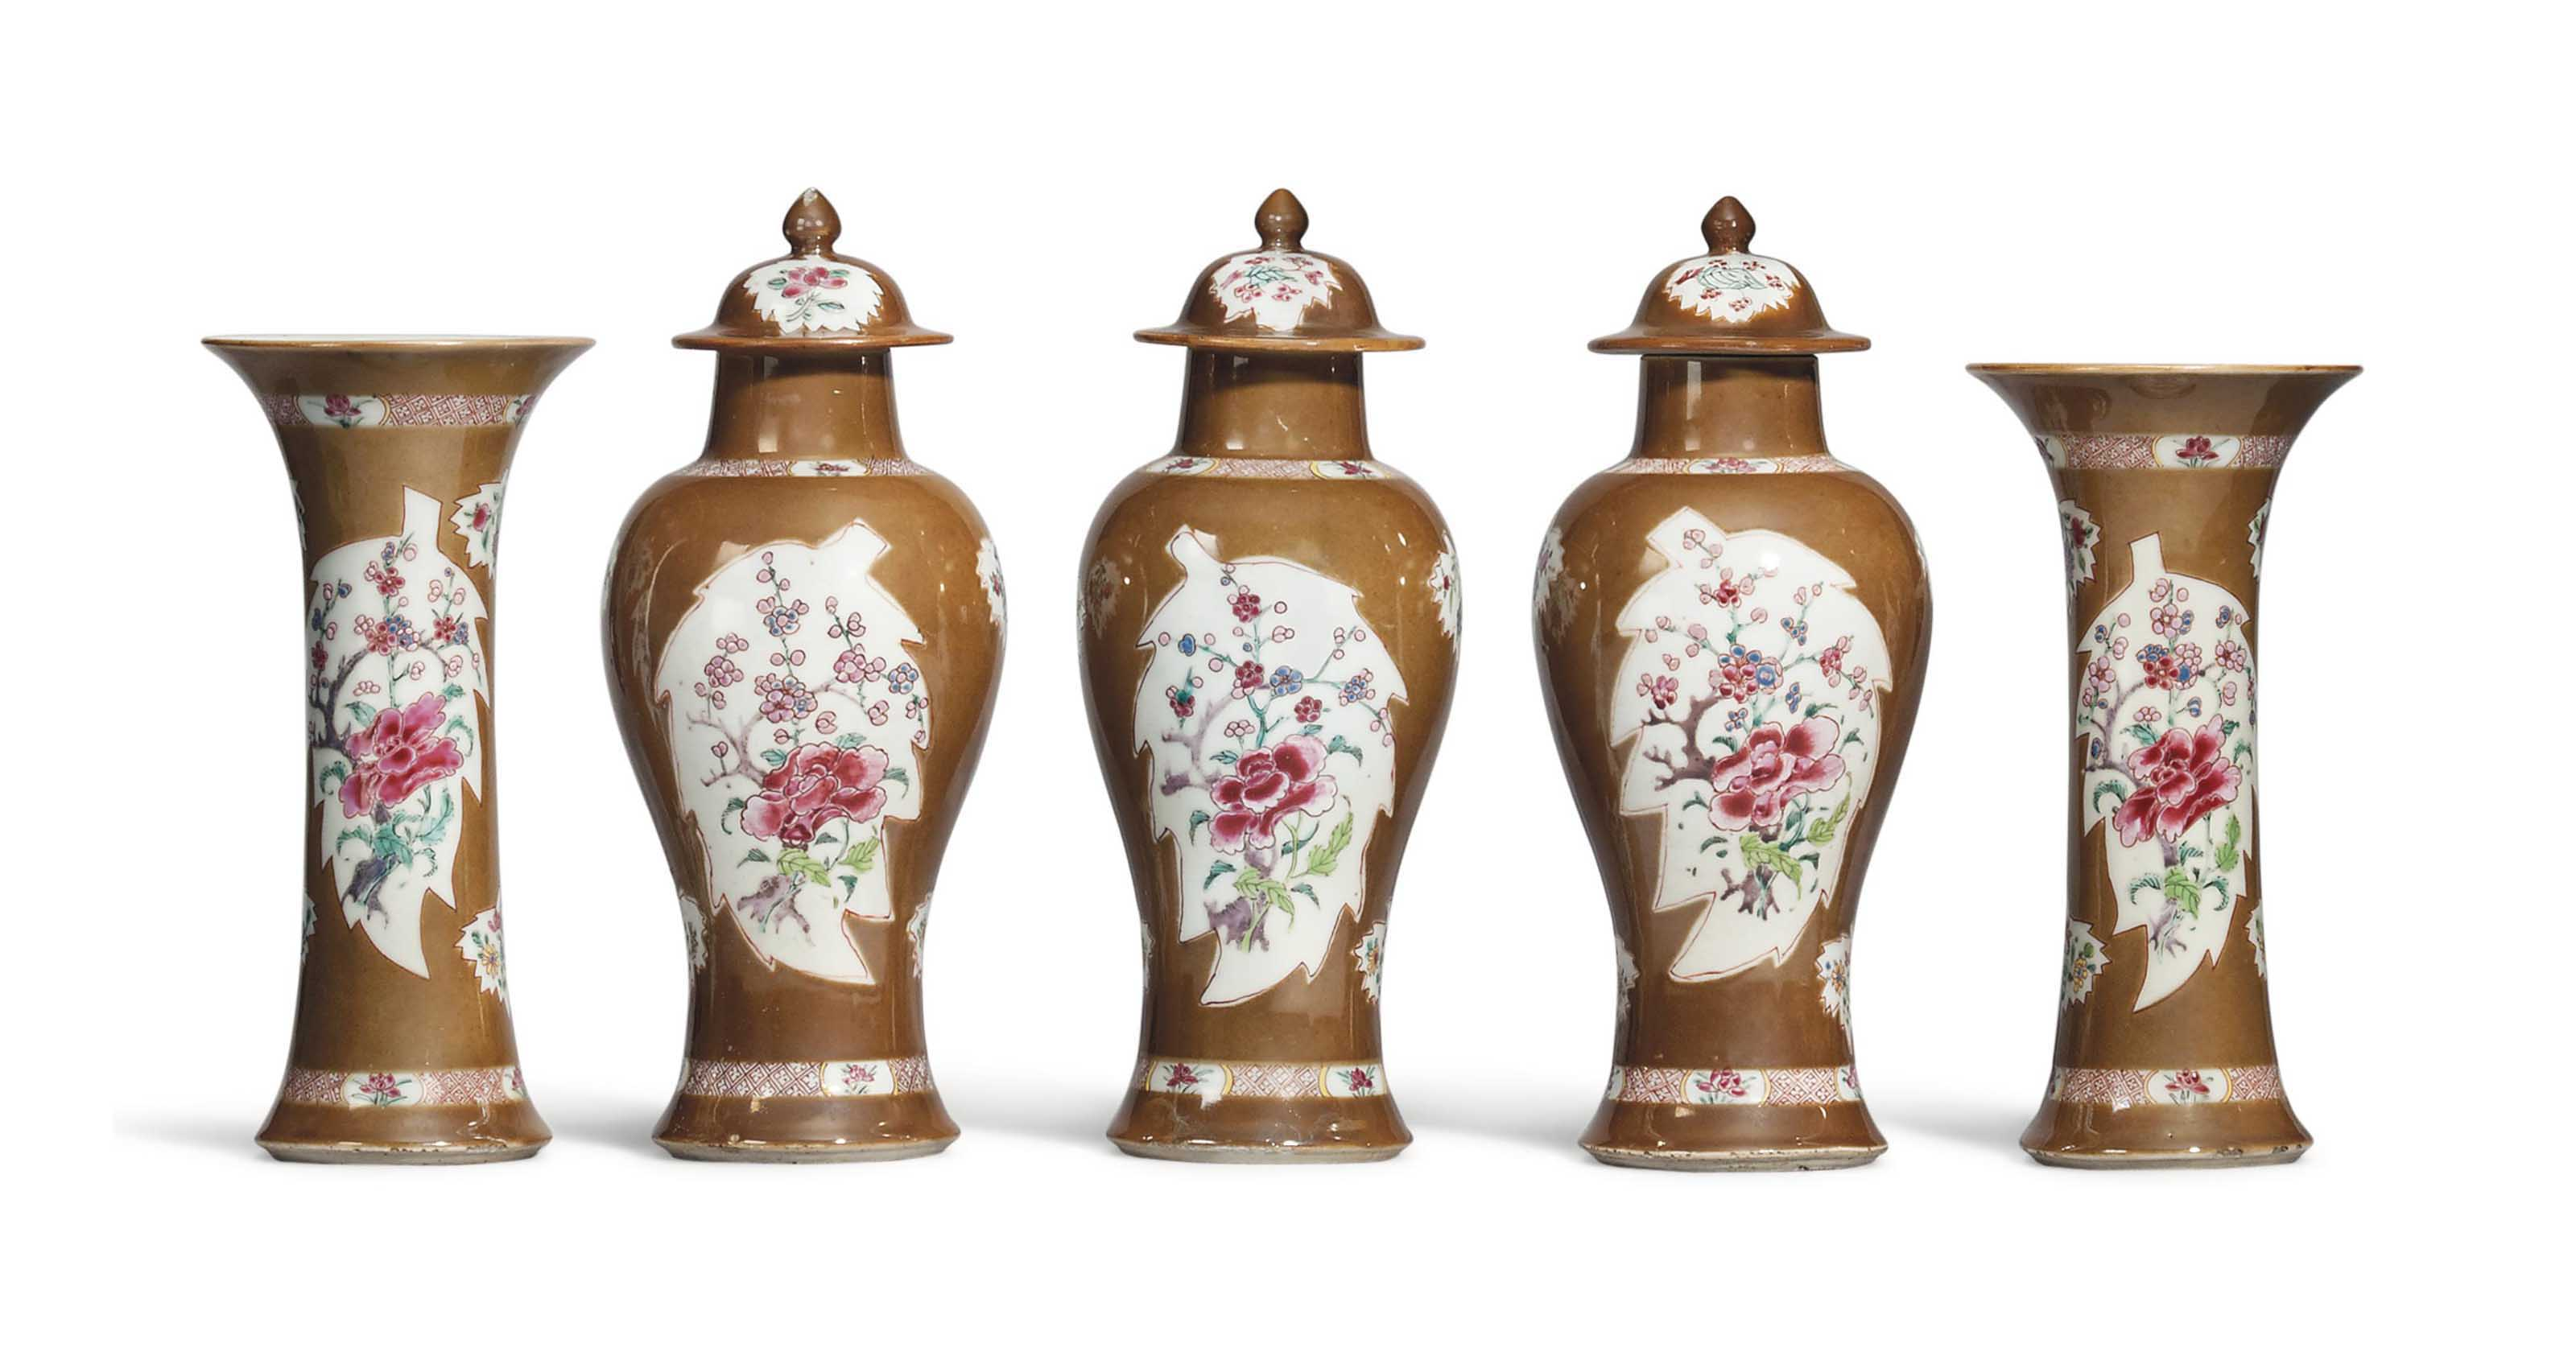 A CHINESE FAMILLE ROSE AND CAFE-AU-LAIT GROUND FIVE-PIECE GARNITURE